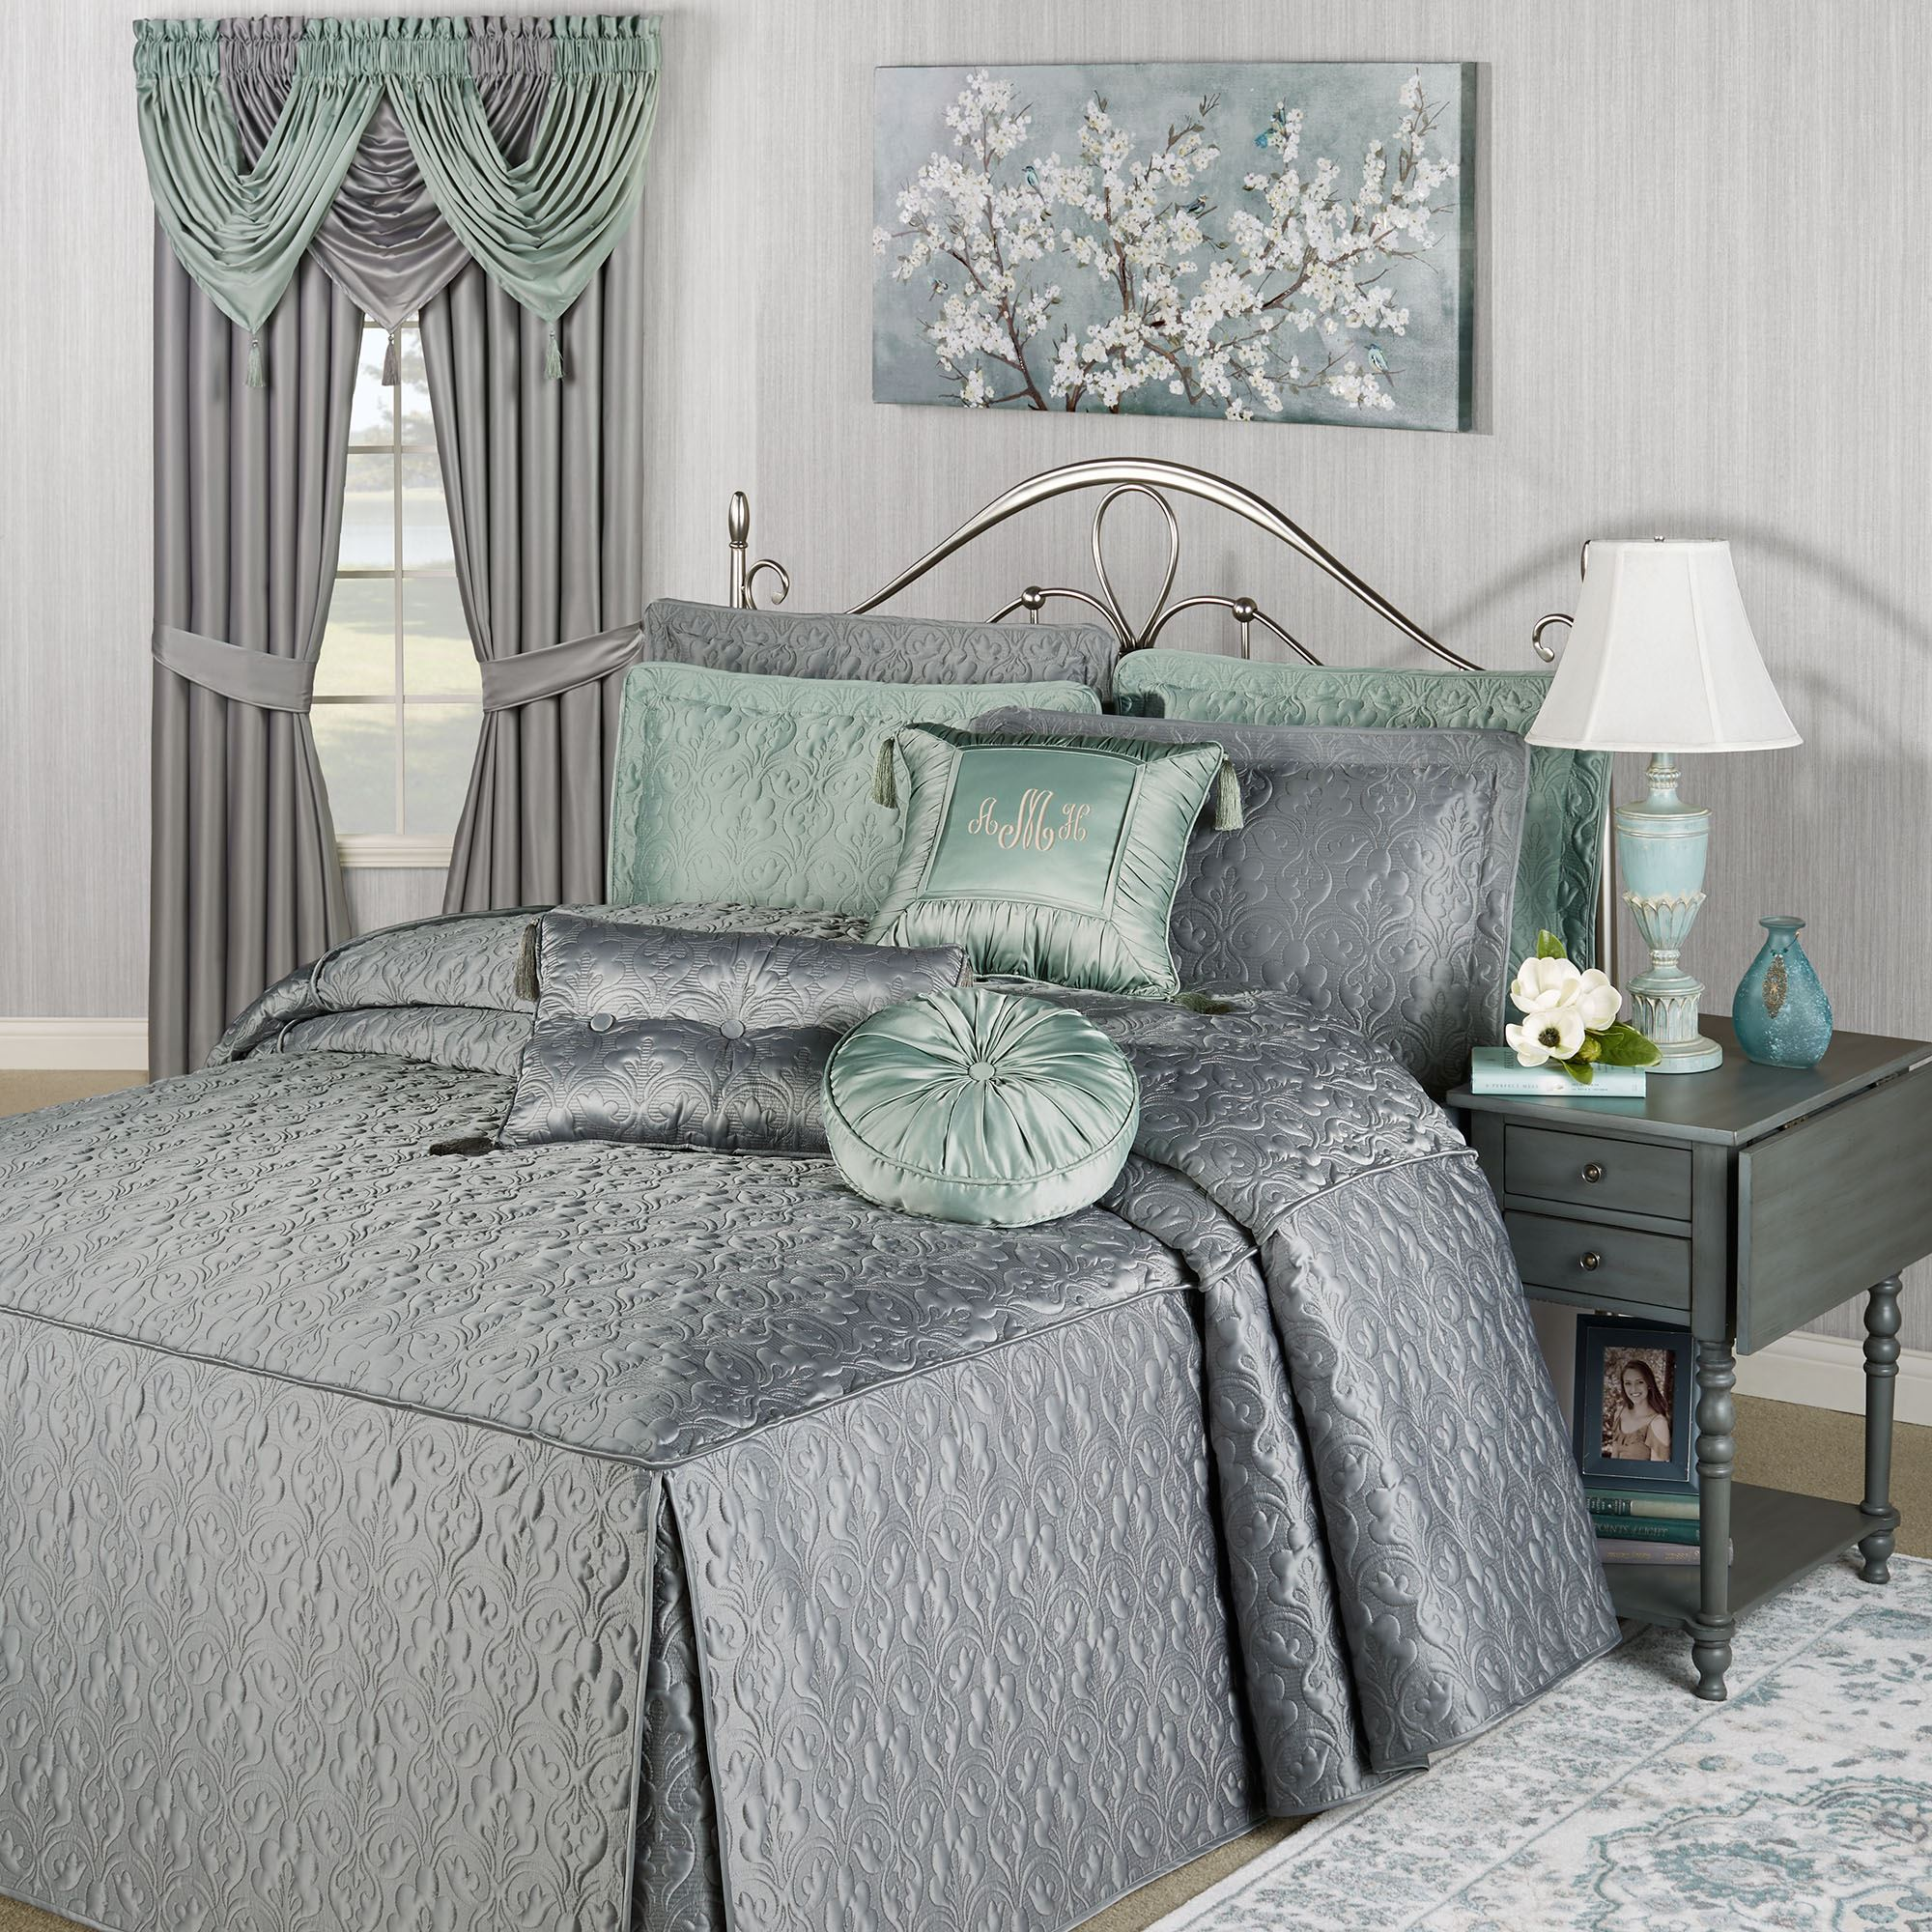 Cambridge Classics Warm Gray Fitted Bedspread Bedding